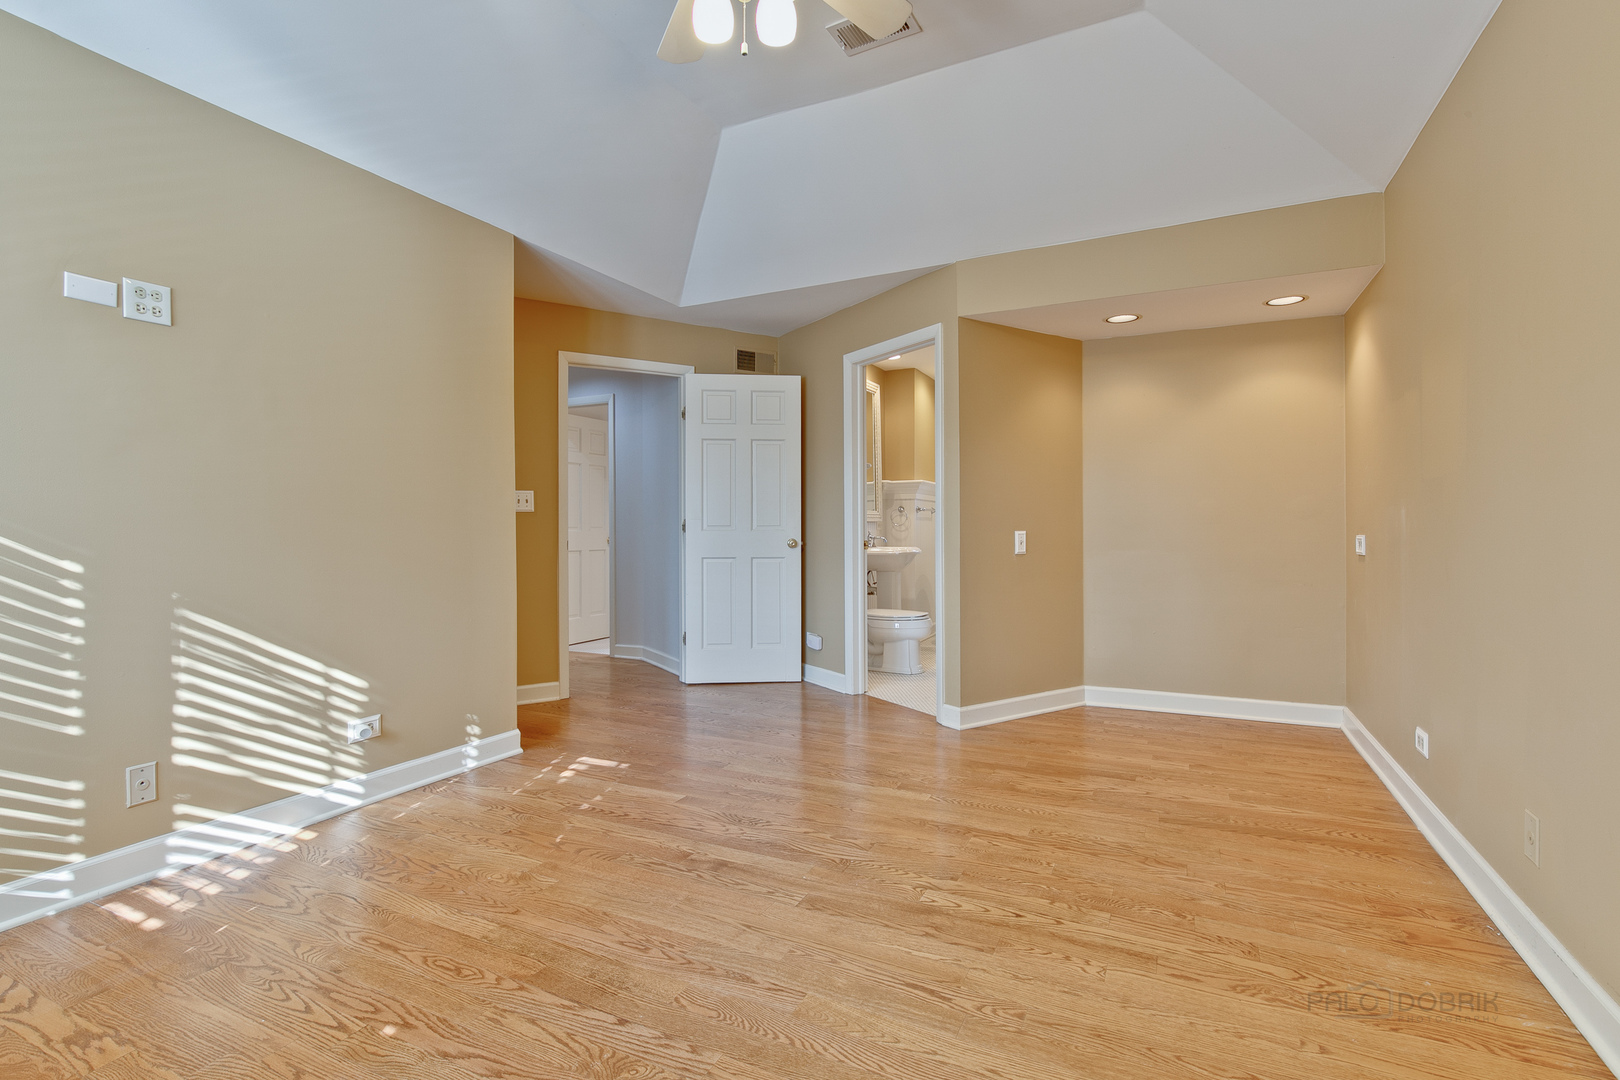 503 West 8th, Hinsdale, Illinois, 60521